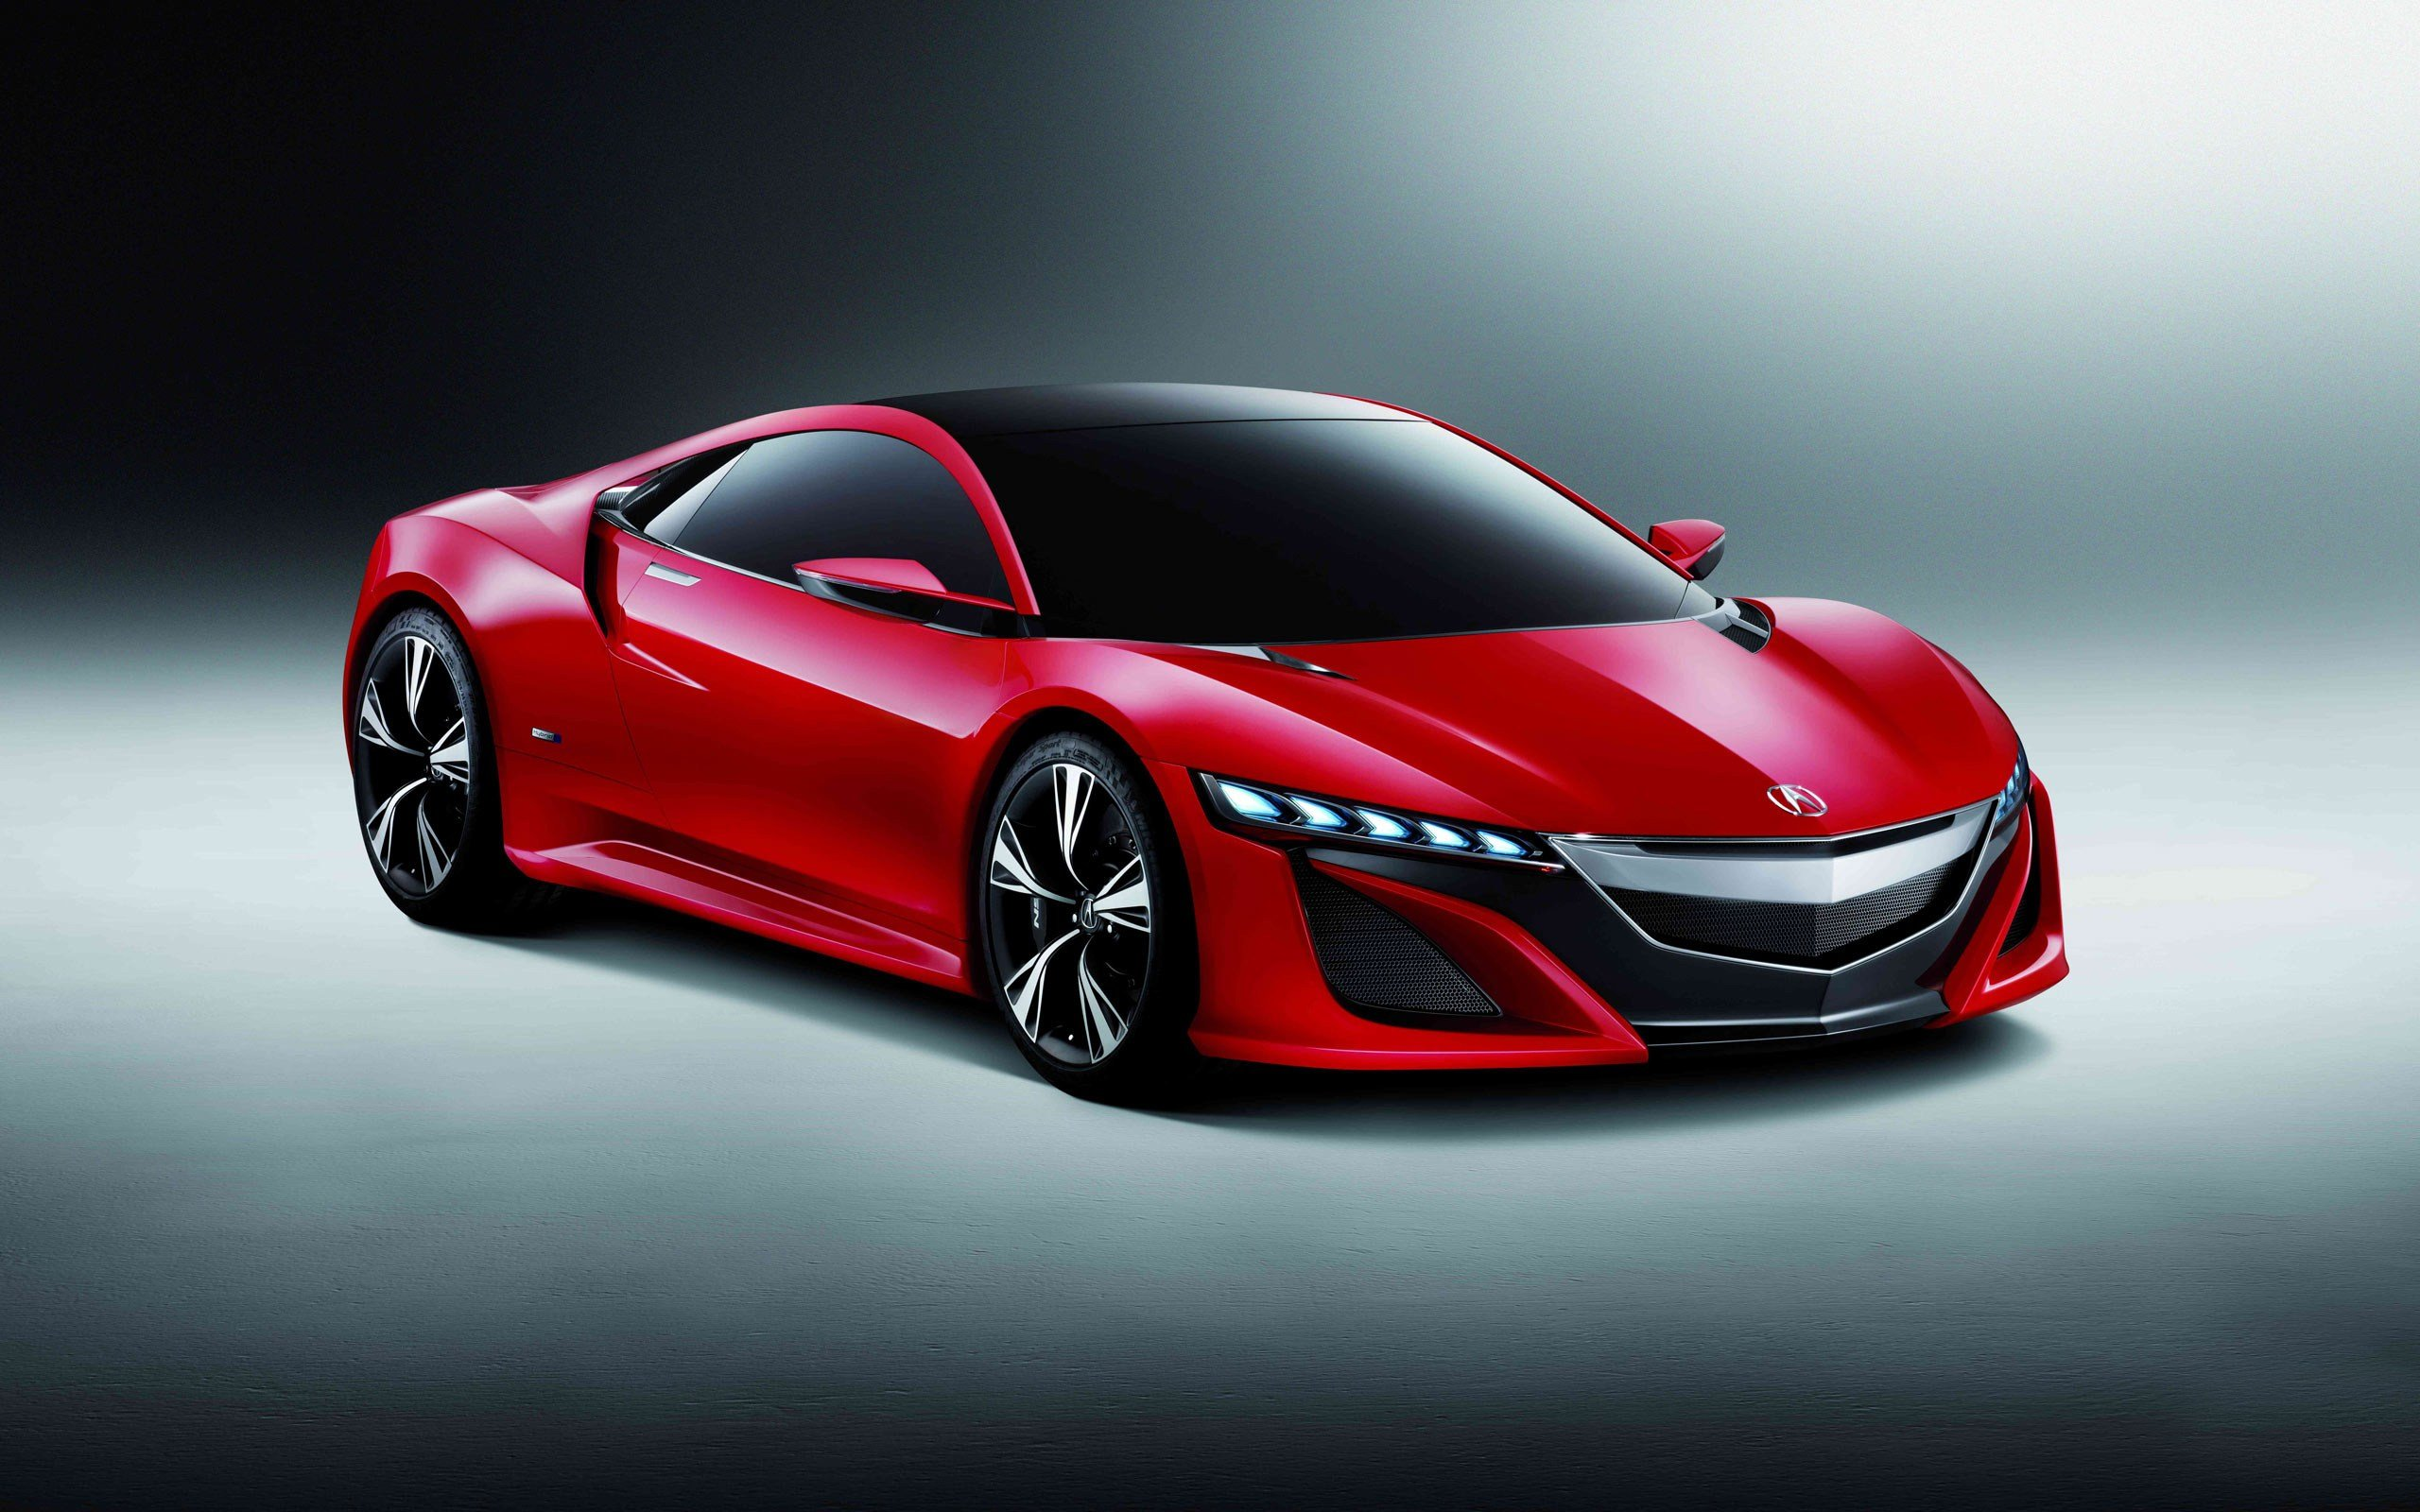 Latest Acura Nsx Concept Wallpaper Hd Car Wallpapers Id 2738 Free Download